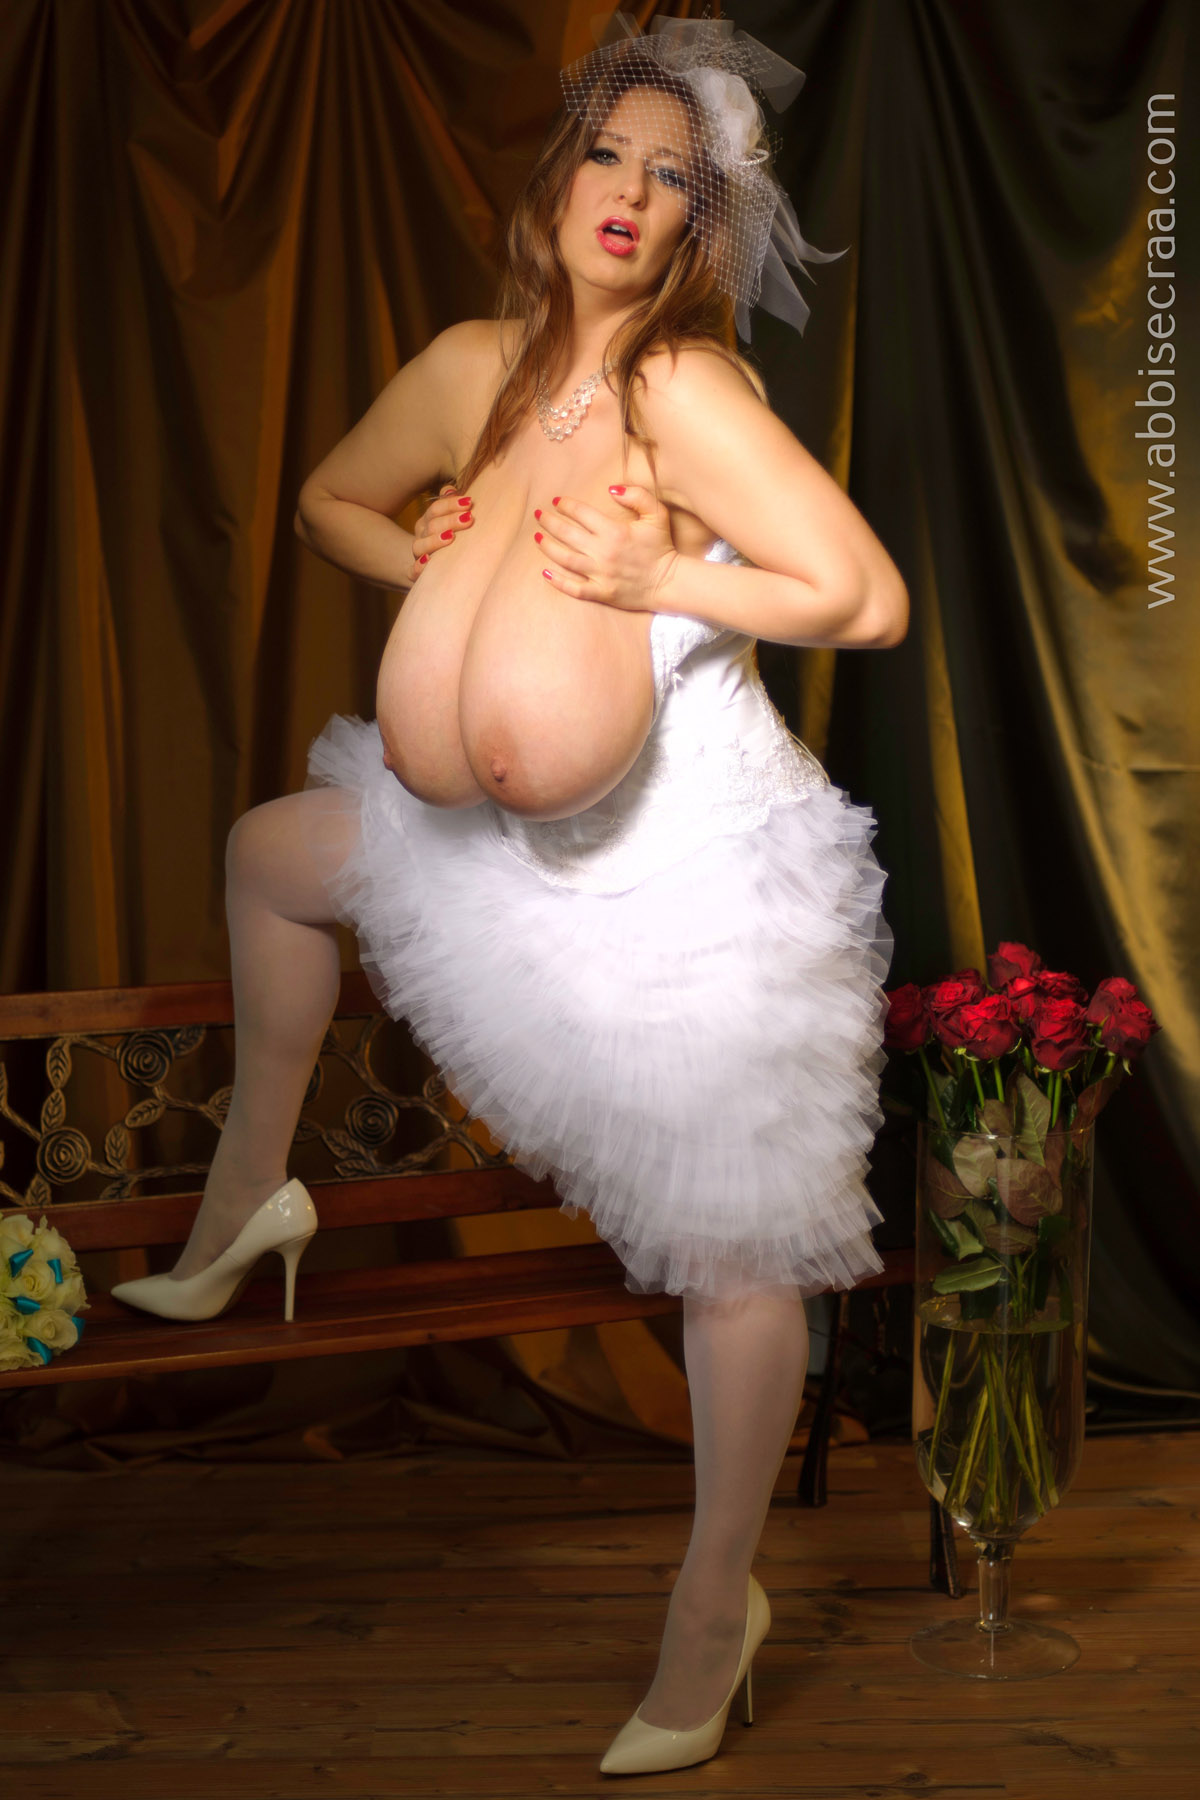 Biggest breasts ever on a 9 month pregnant milf - 3 6